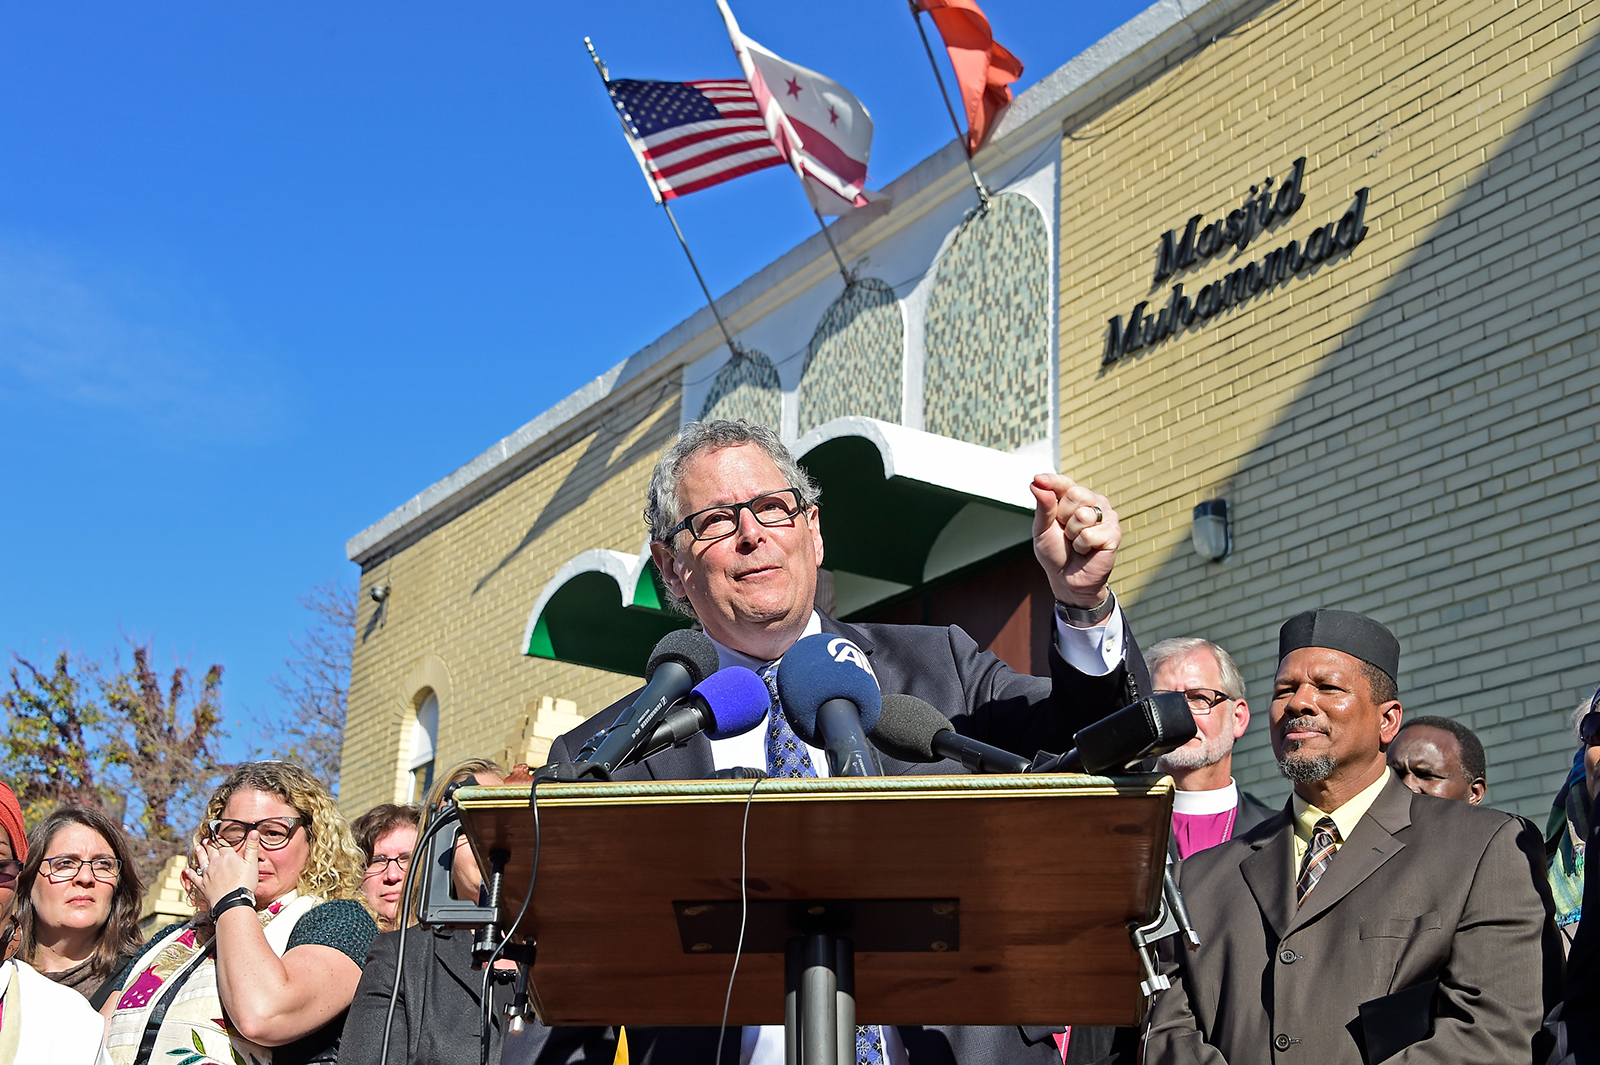 President of Interfaith Alliance, Rabbi Jack Moline, speaks at a press conference calling on then President-elect Donald Trump to respect religious liberty, in Washington DC, on November 18, 2016.